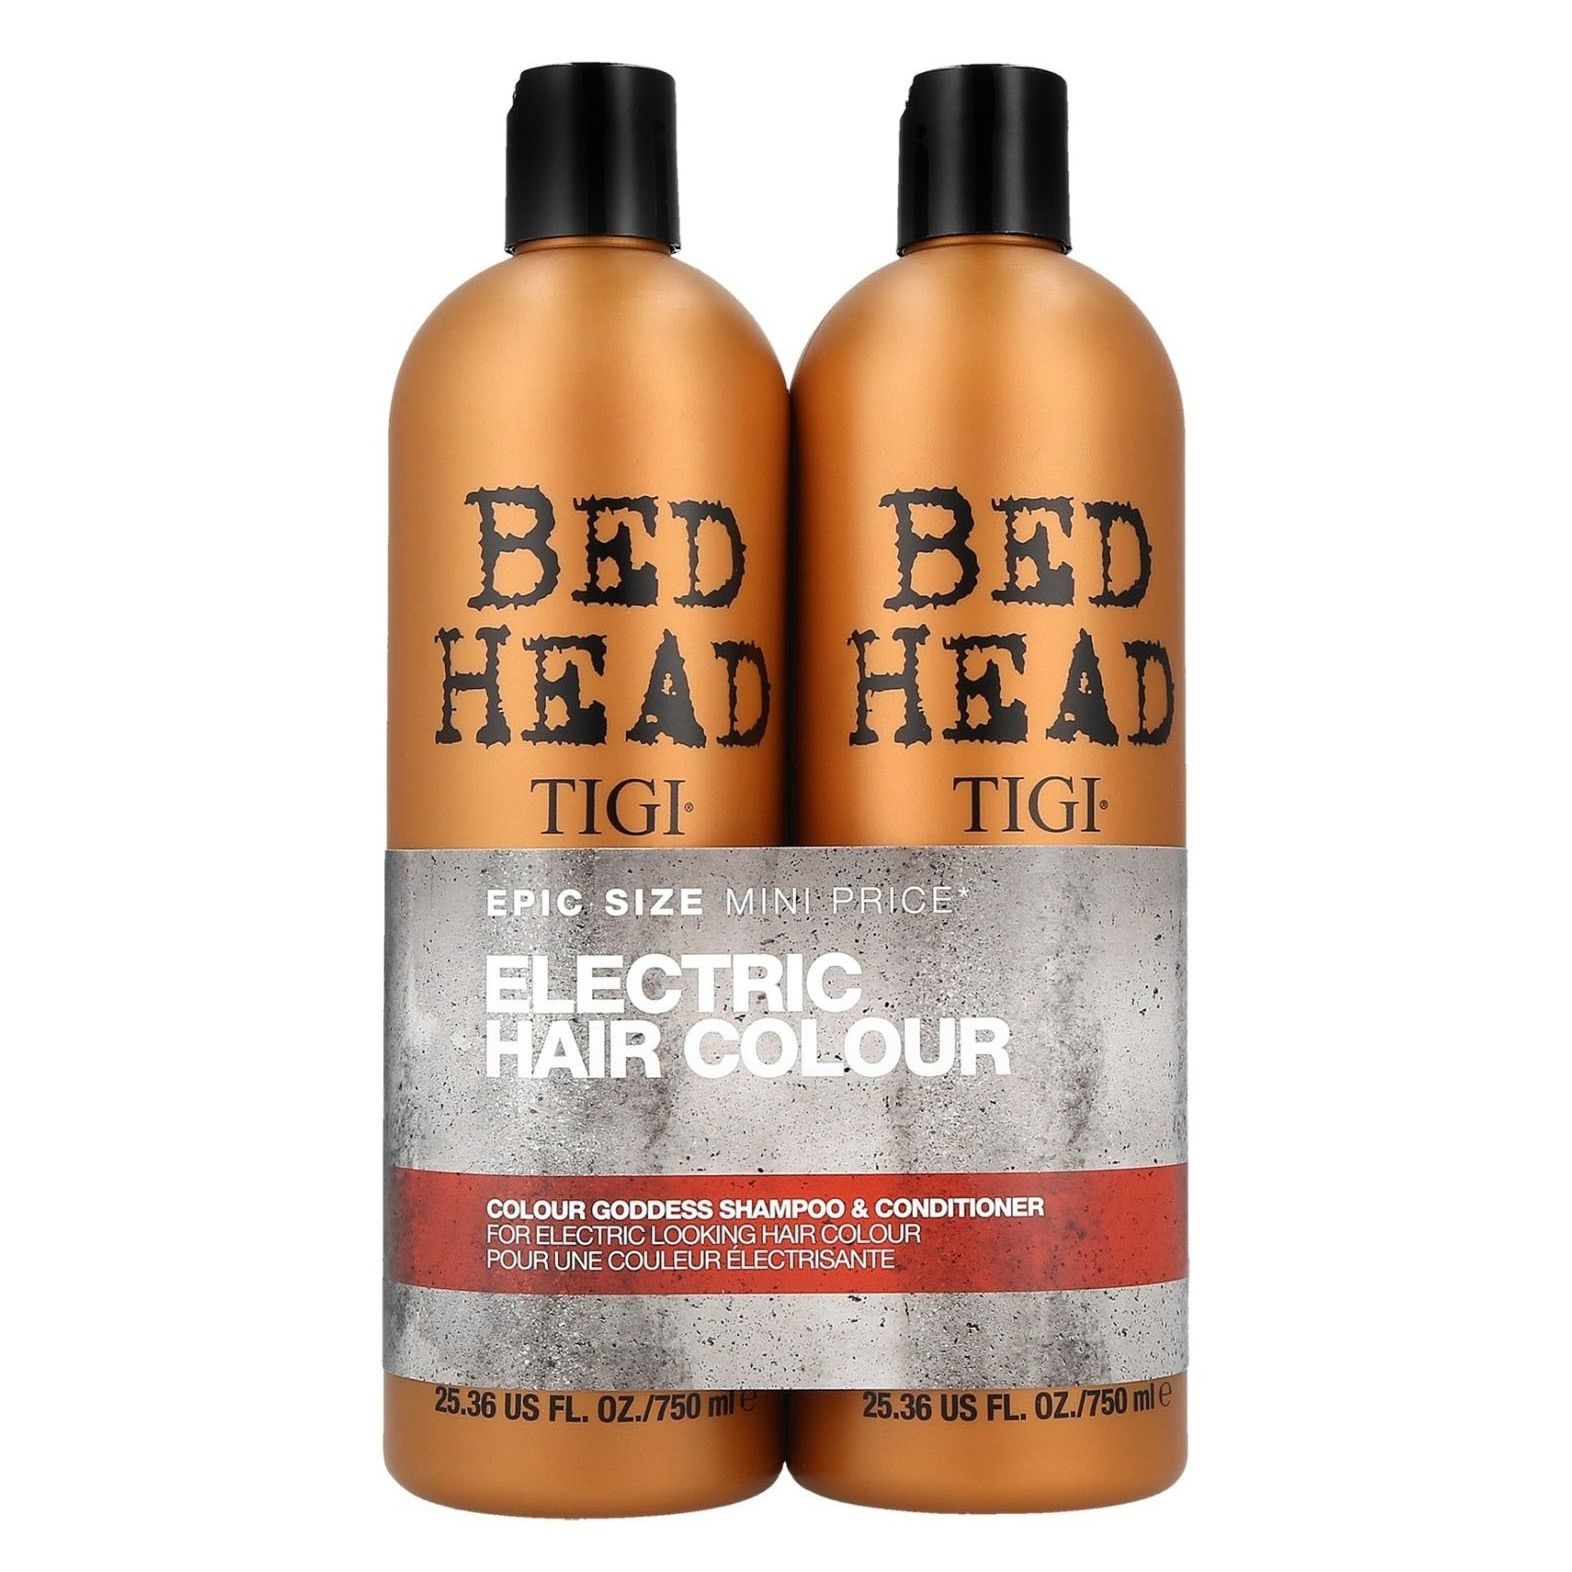 Tigi Bed Head Color Goddiess Shampoo 750 ml & Conditioner 750 ml szett